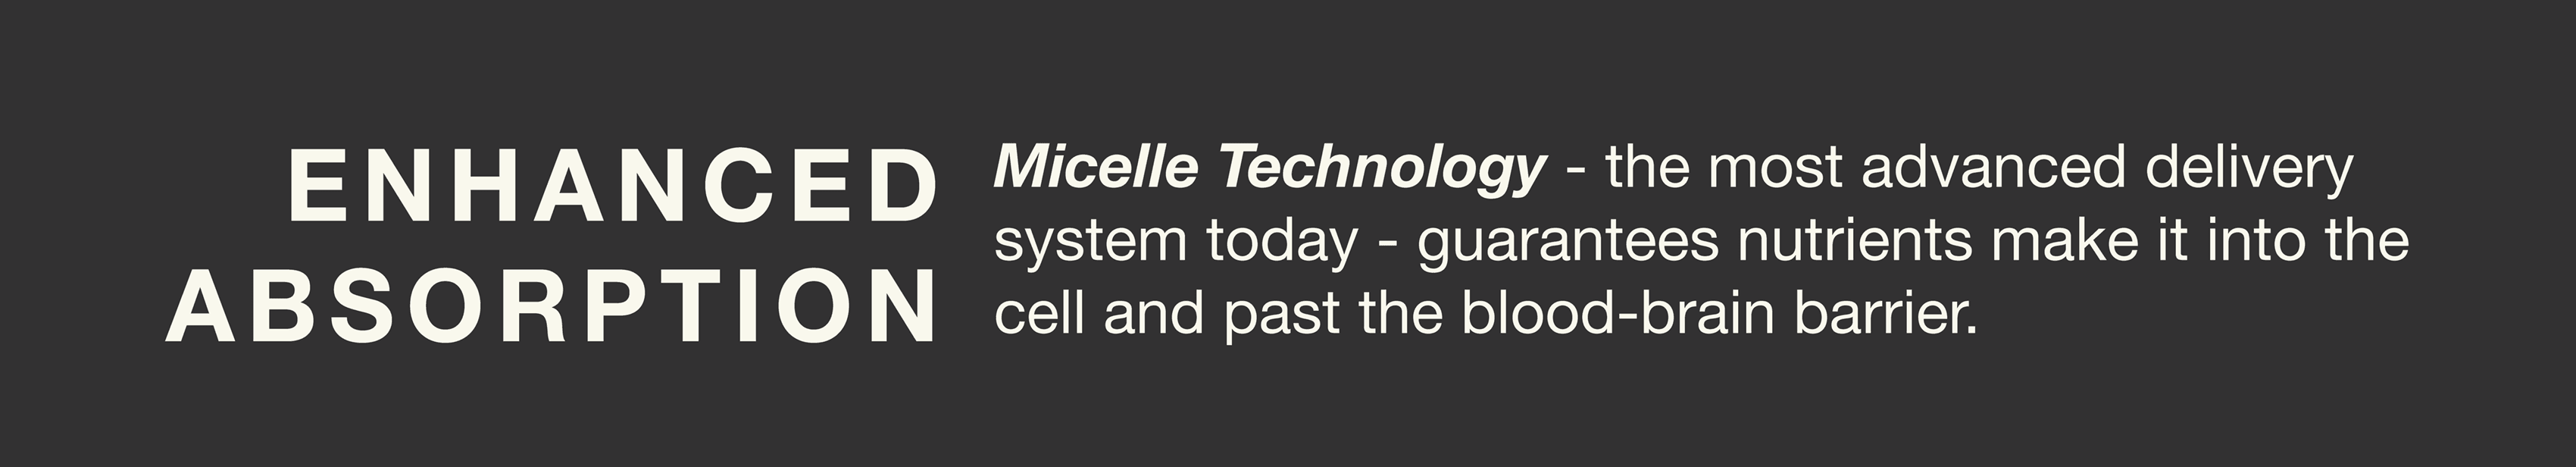 Enhanced absorption via micelle technology, the most advanced delivery system today to guarantee nutrients make it into cells